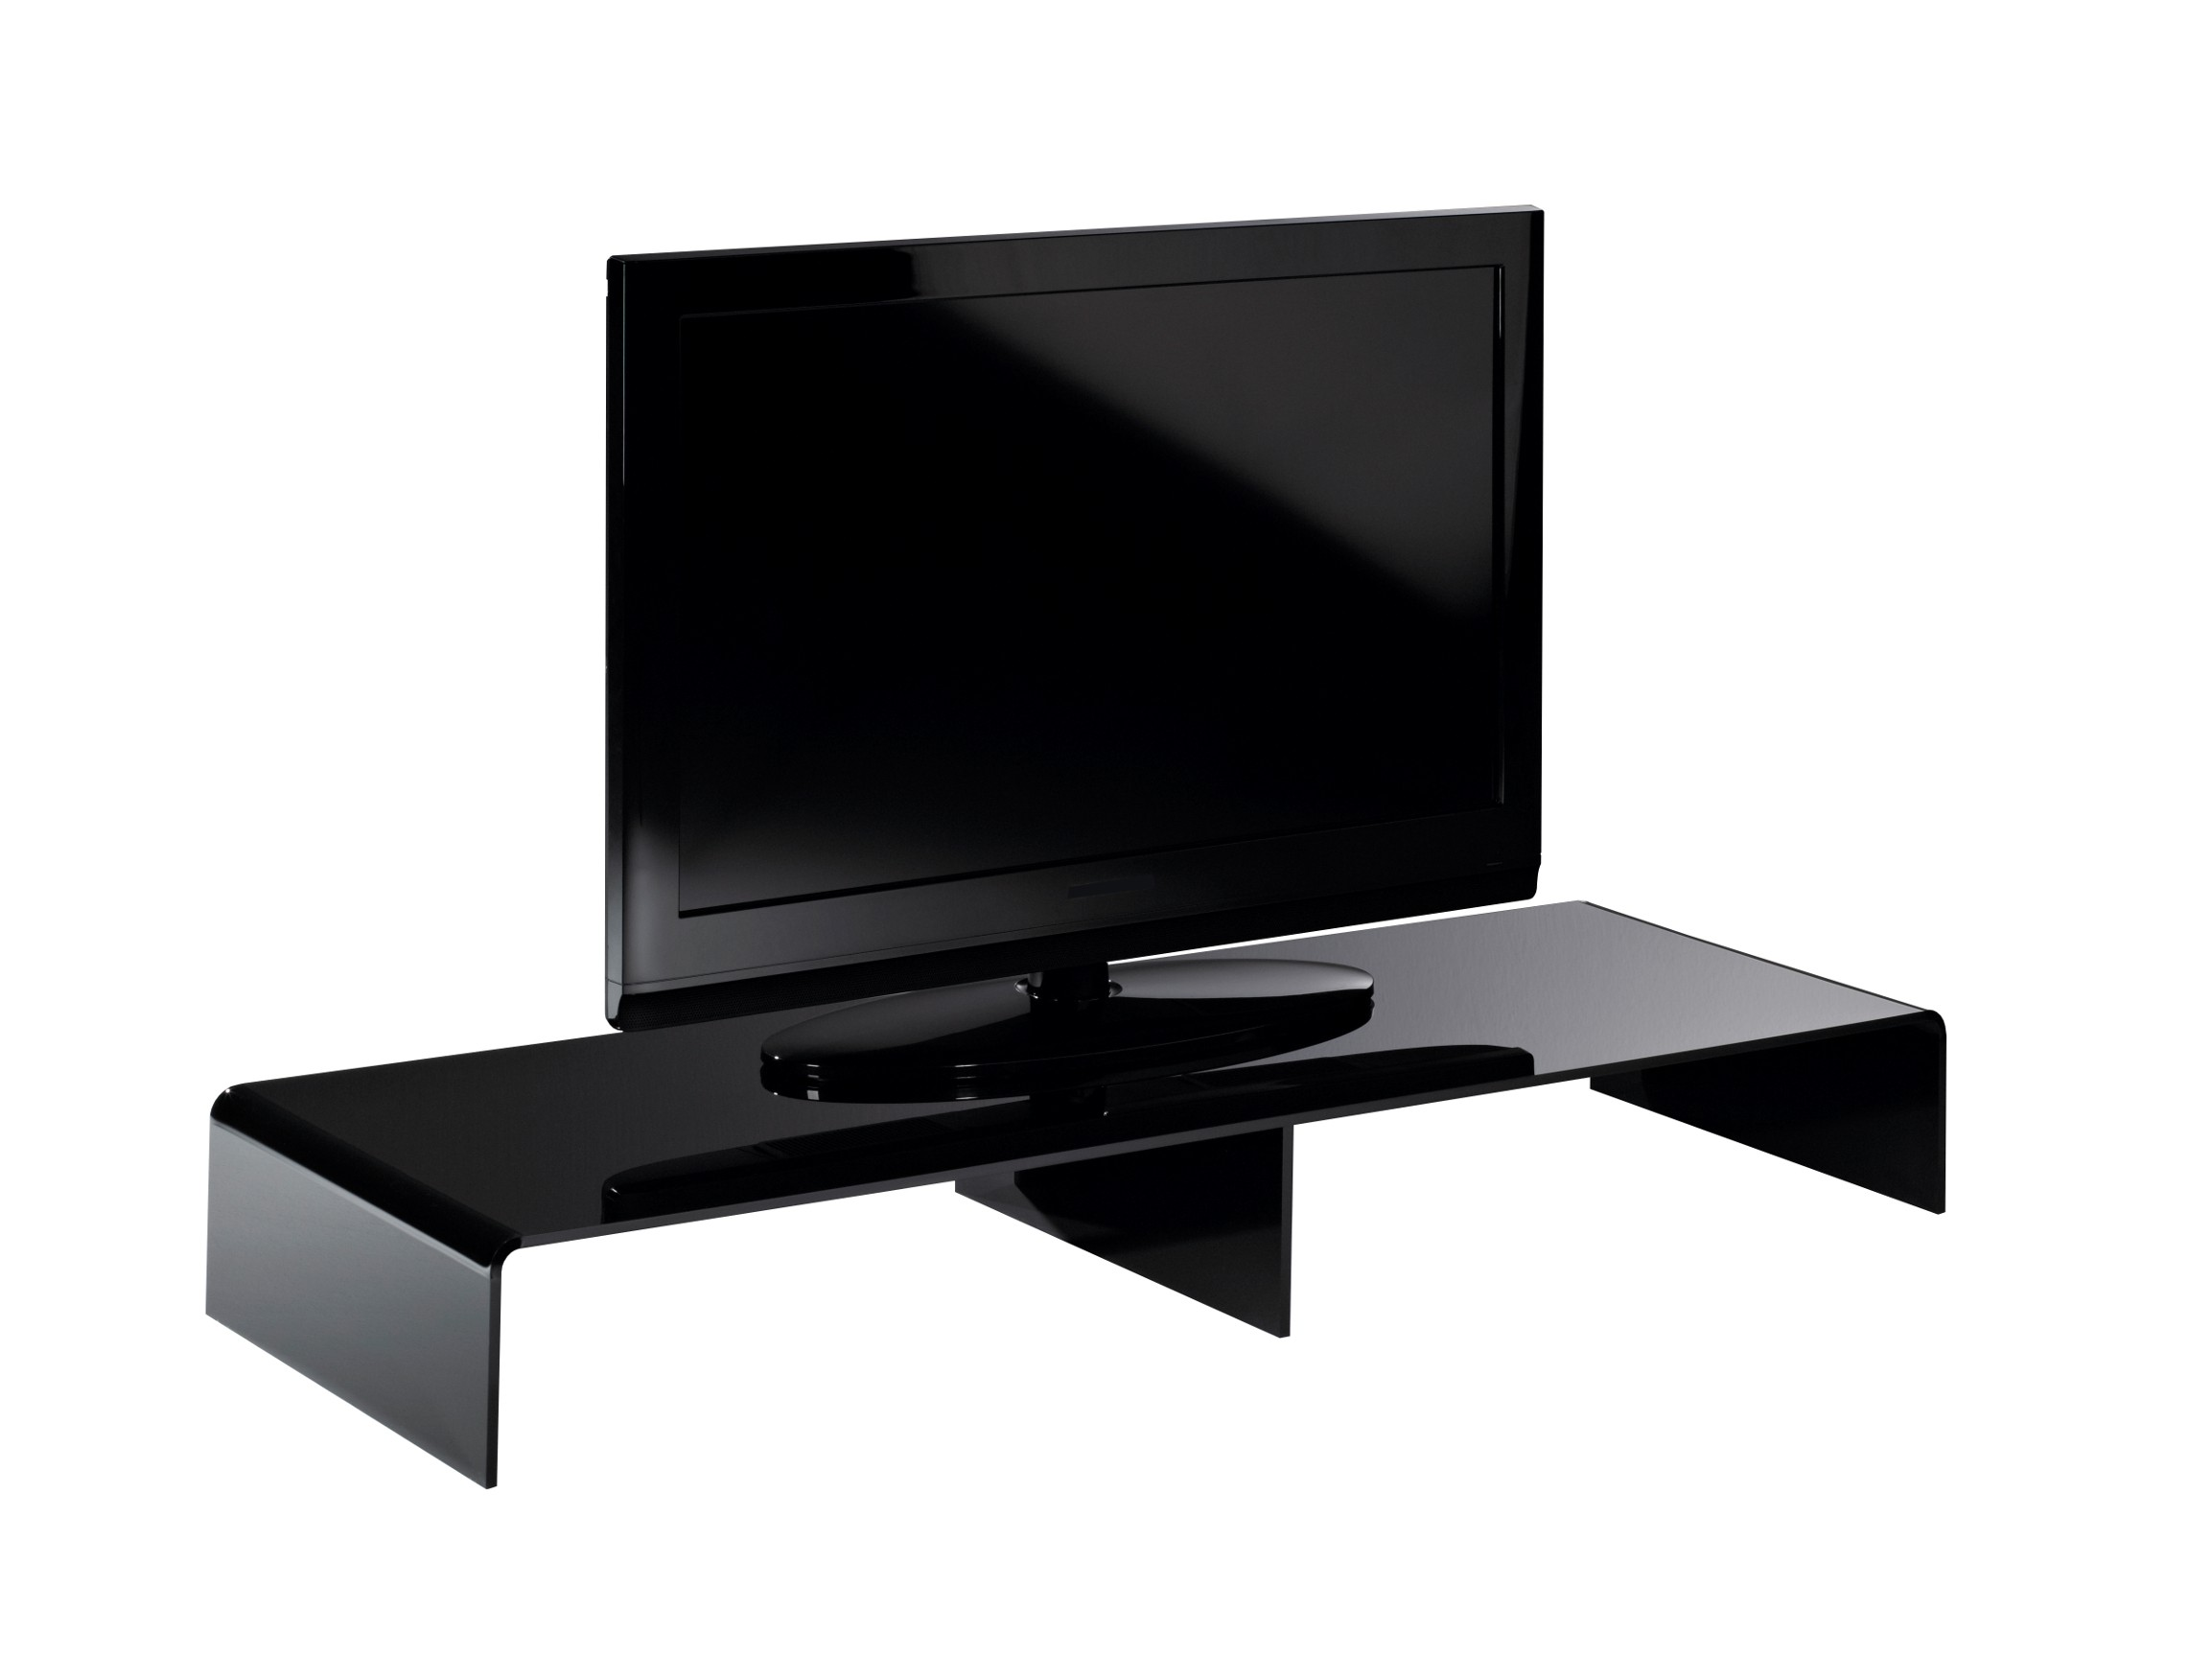 tv konsole new york breite 120 cm acrylglas schwarz wohnen tv m bel tv lowboards. Black Bedroom Furniture Sets. Home Design Ideas